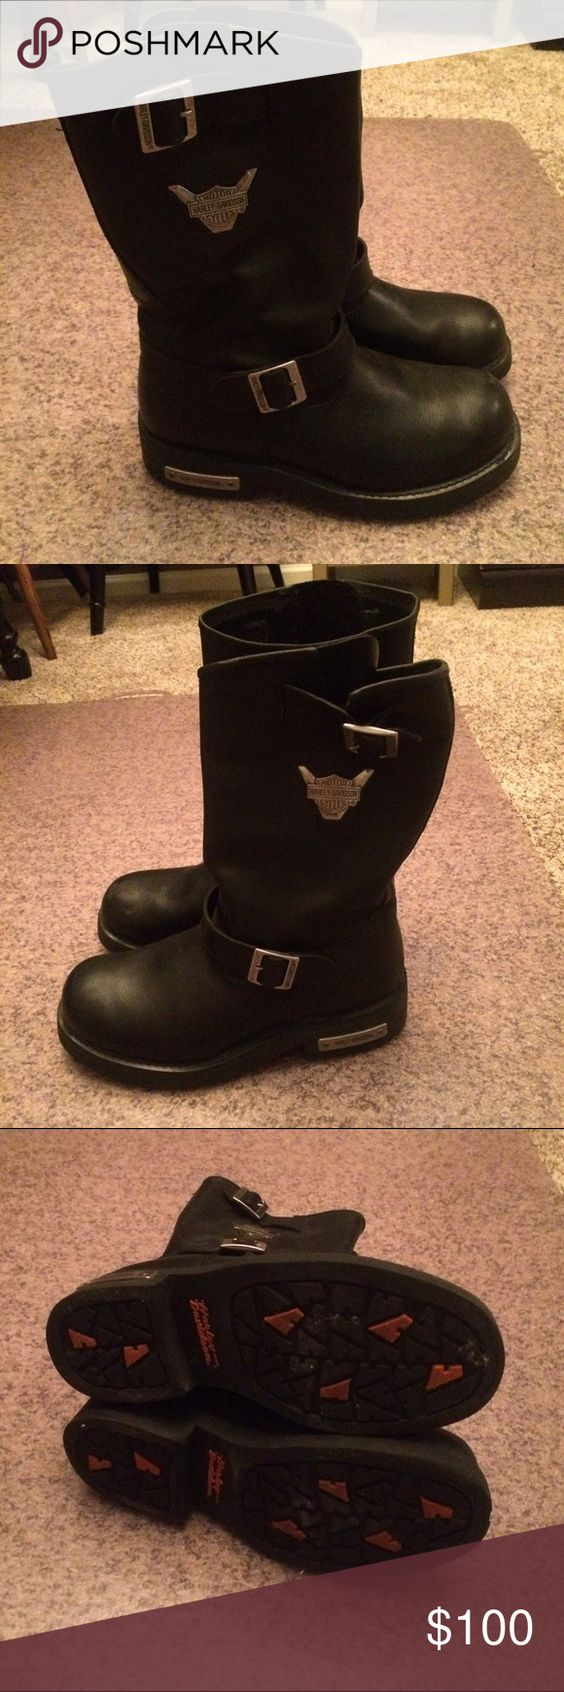 Men's Harley Davidson boots. Men's black Harley Davidson genuine leather boots. Only worn a few times. Great condition. Minor scuffs on toe area. Harley-Davidson Shoes Boots